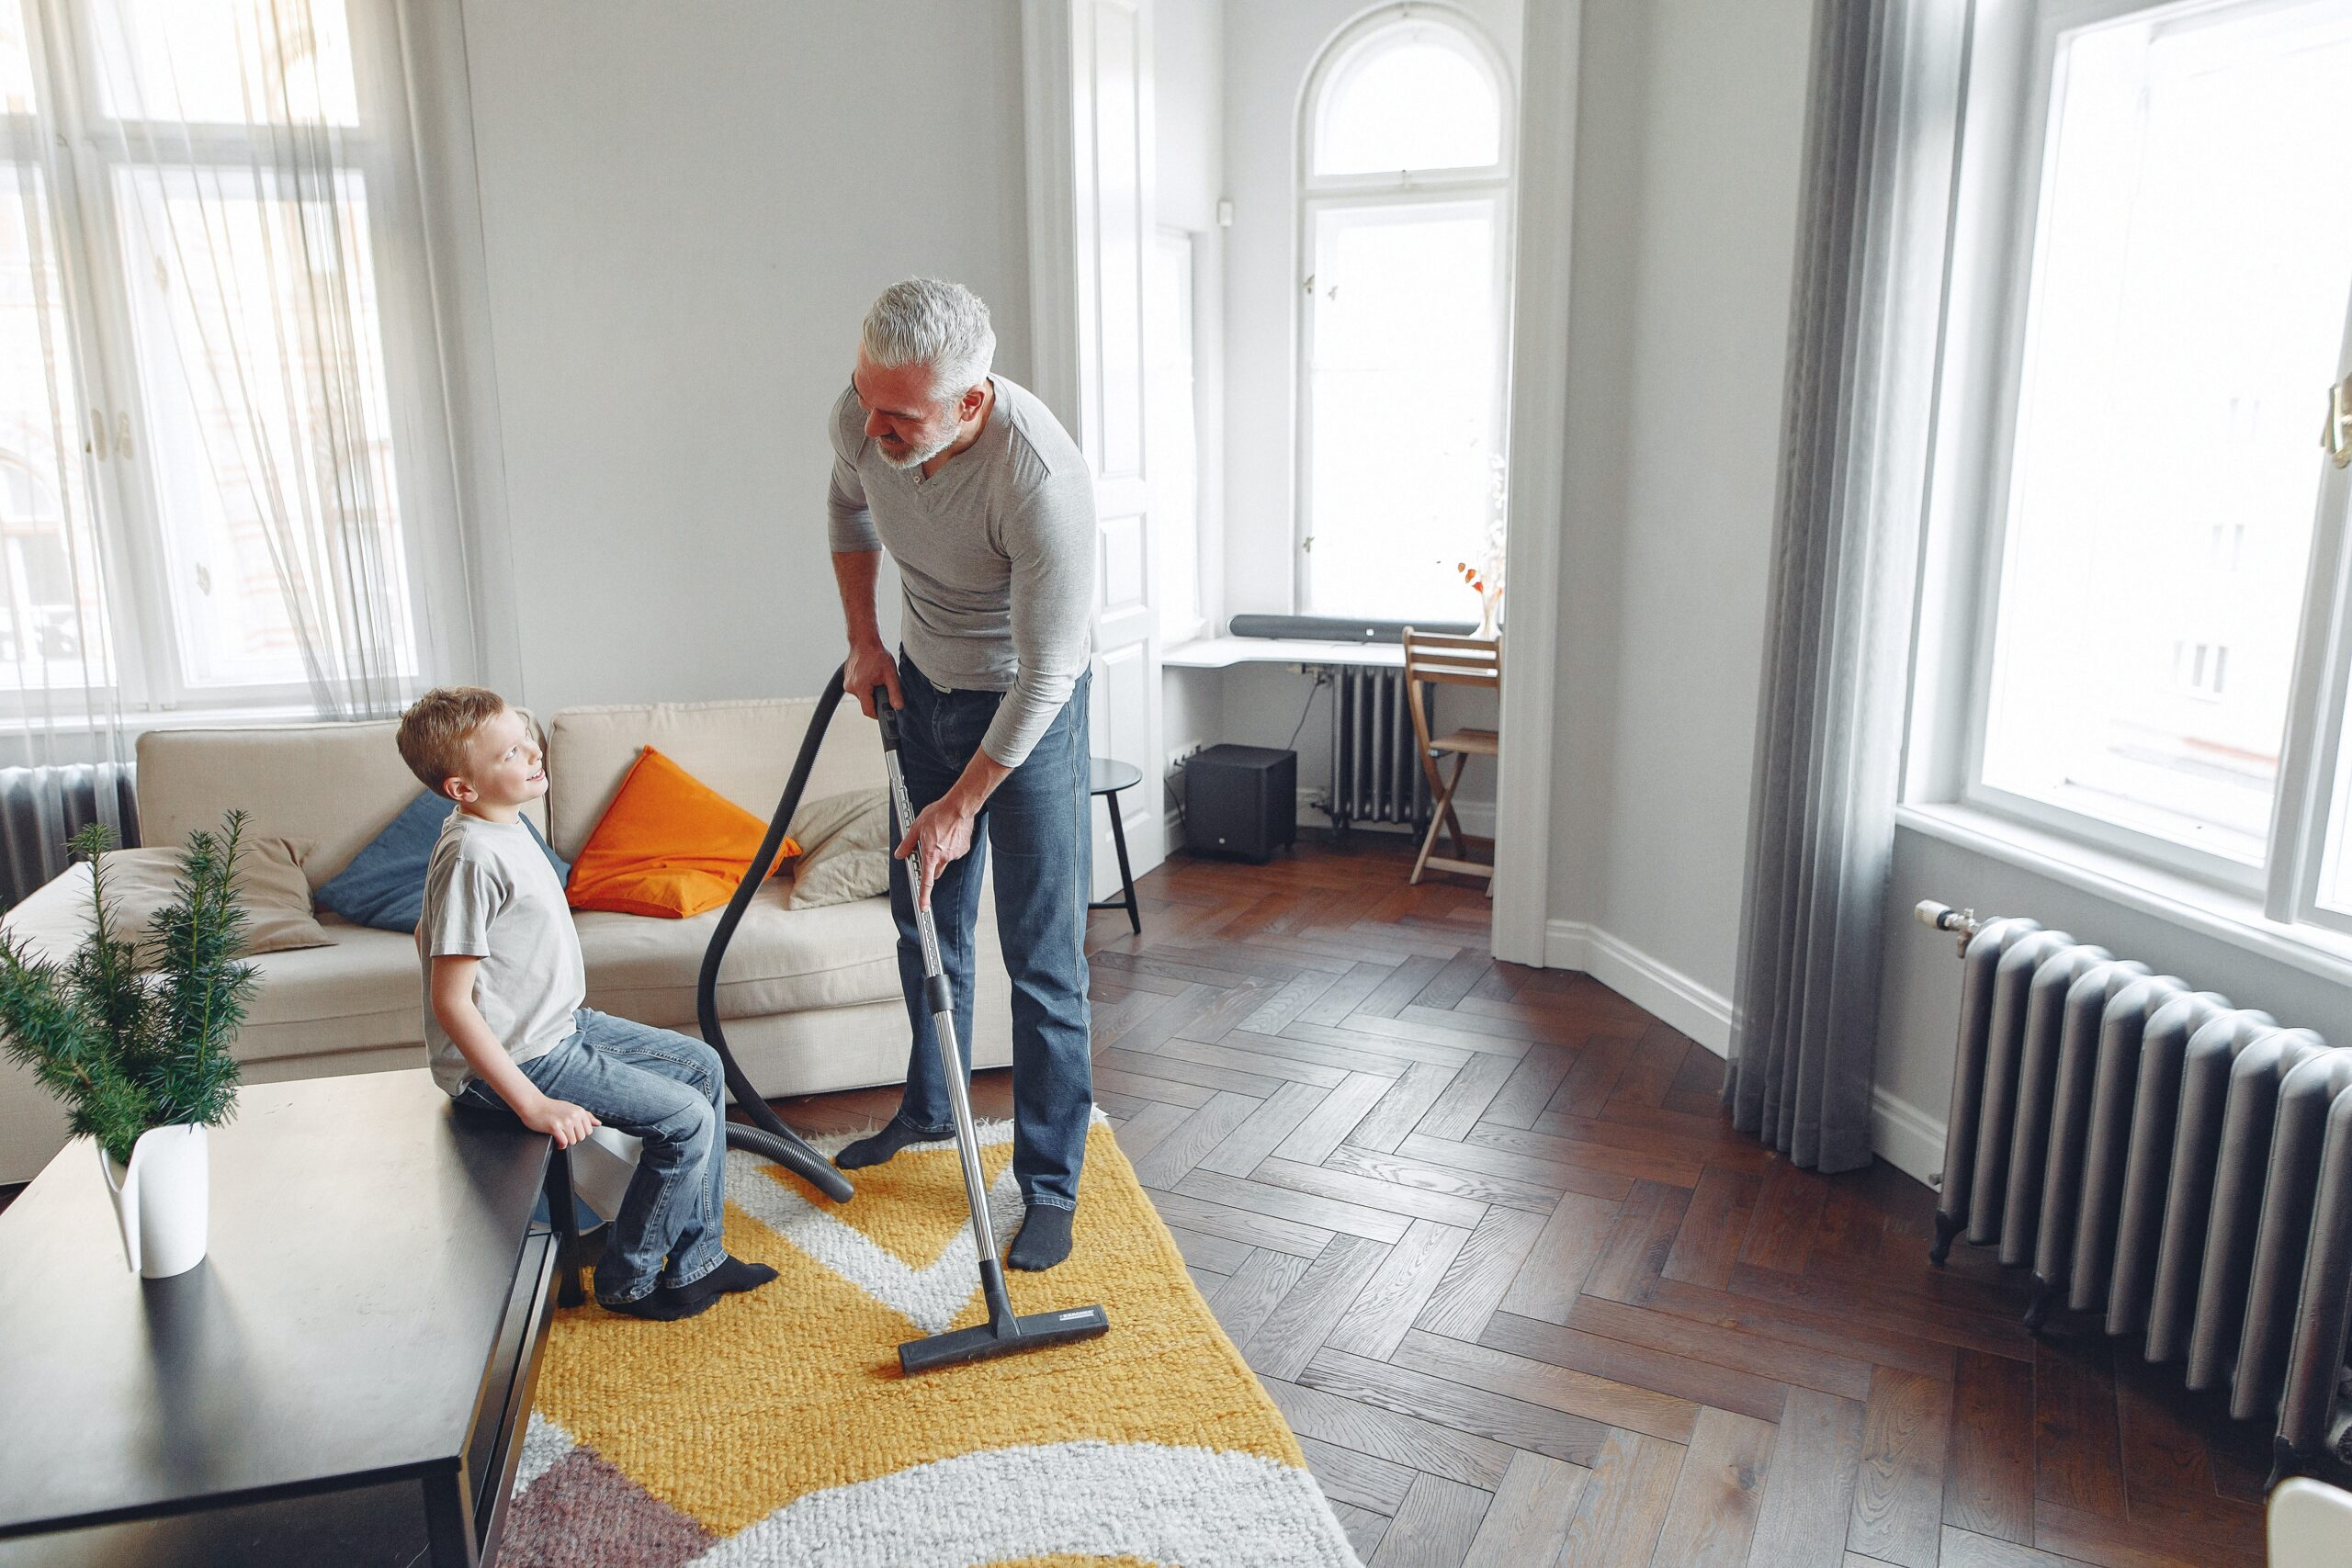 4 Steps to Preserve Rental Home Carpet